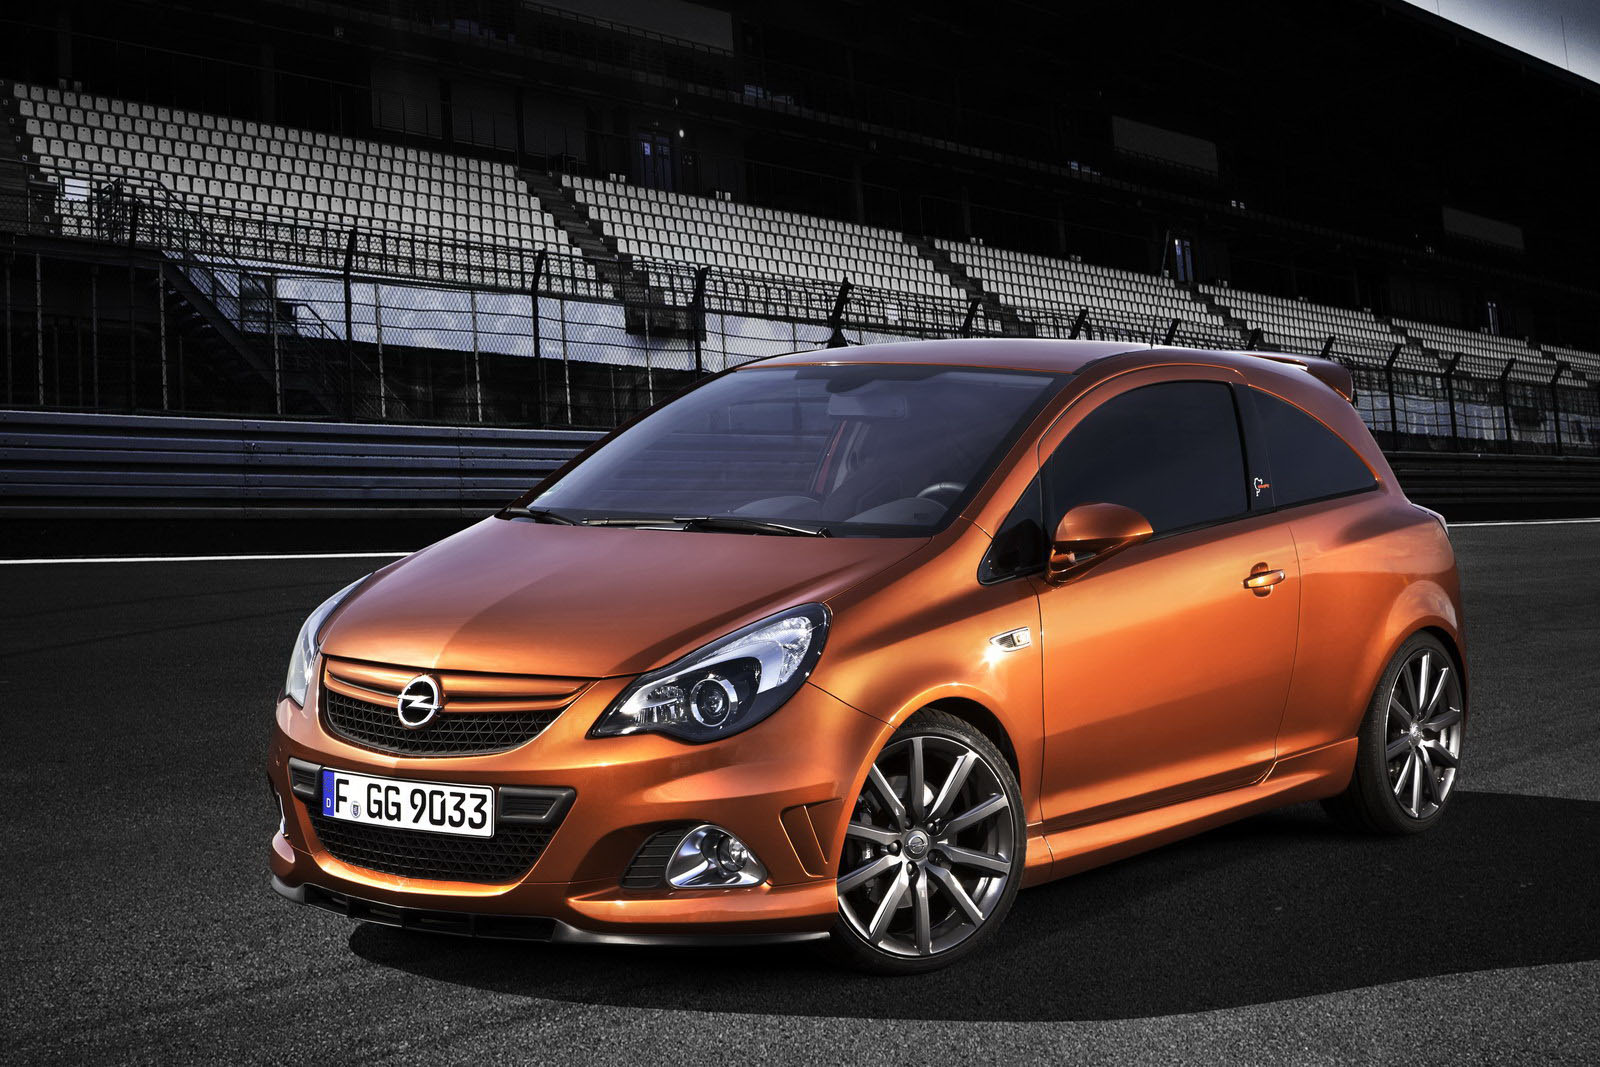 opel corsa opc nurburgring edition comes home for big photoshoot autoevolution. Black Bedroom Furniture Sets. Home Design Ideas